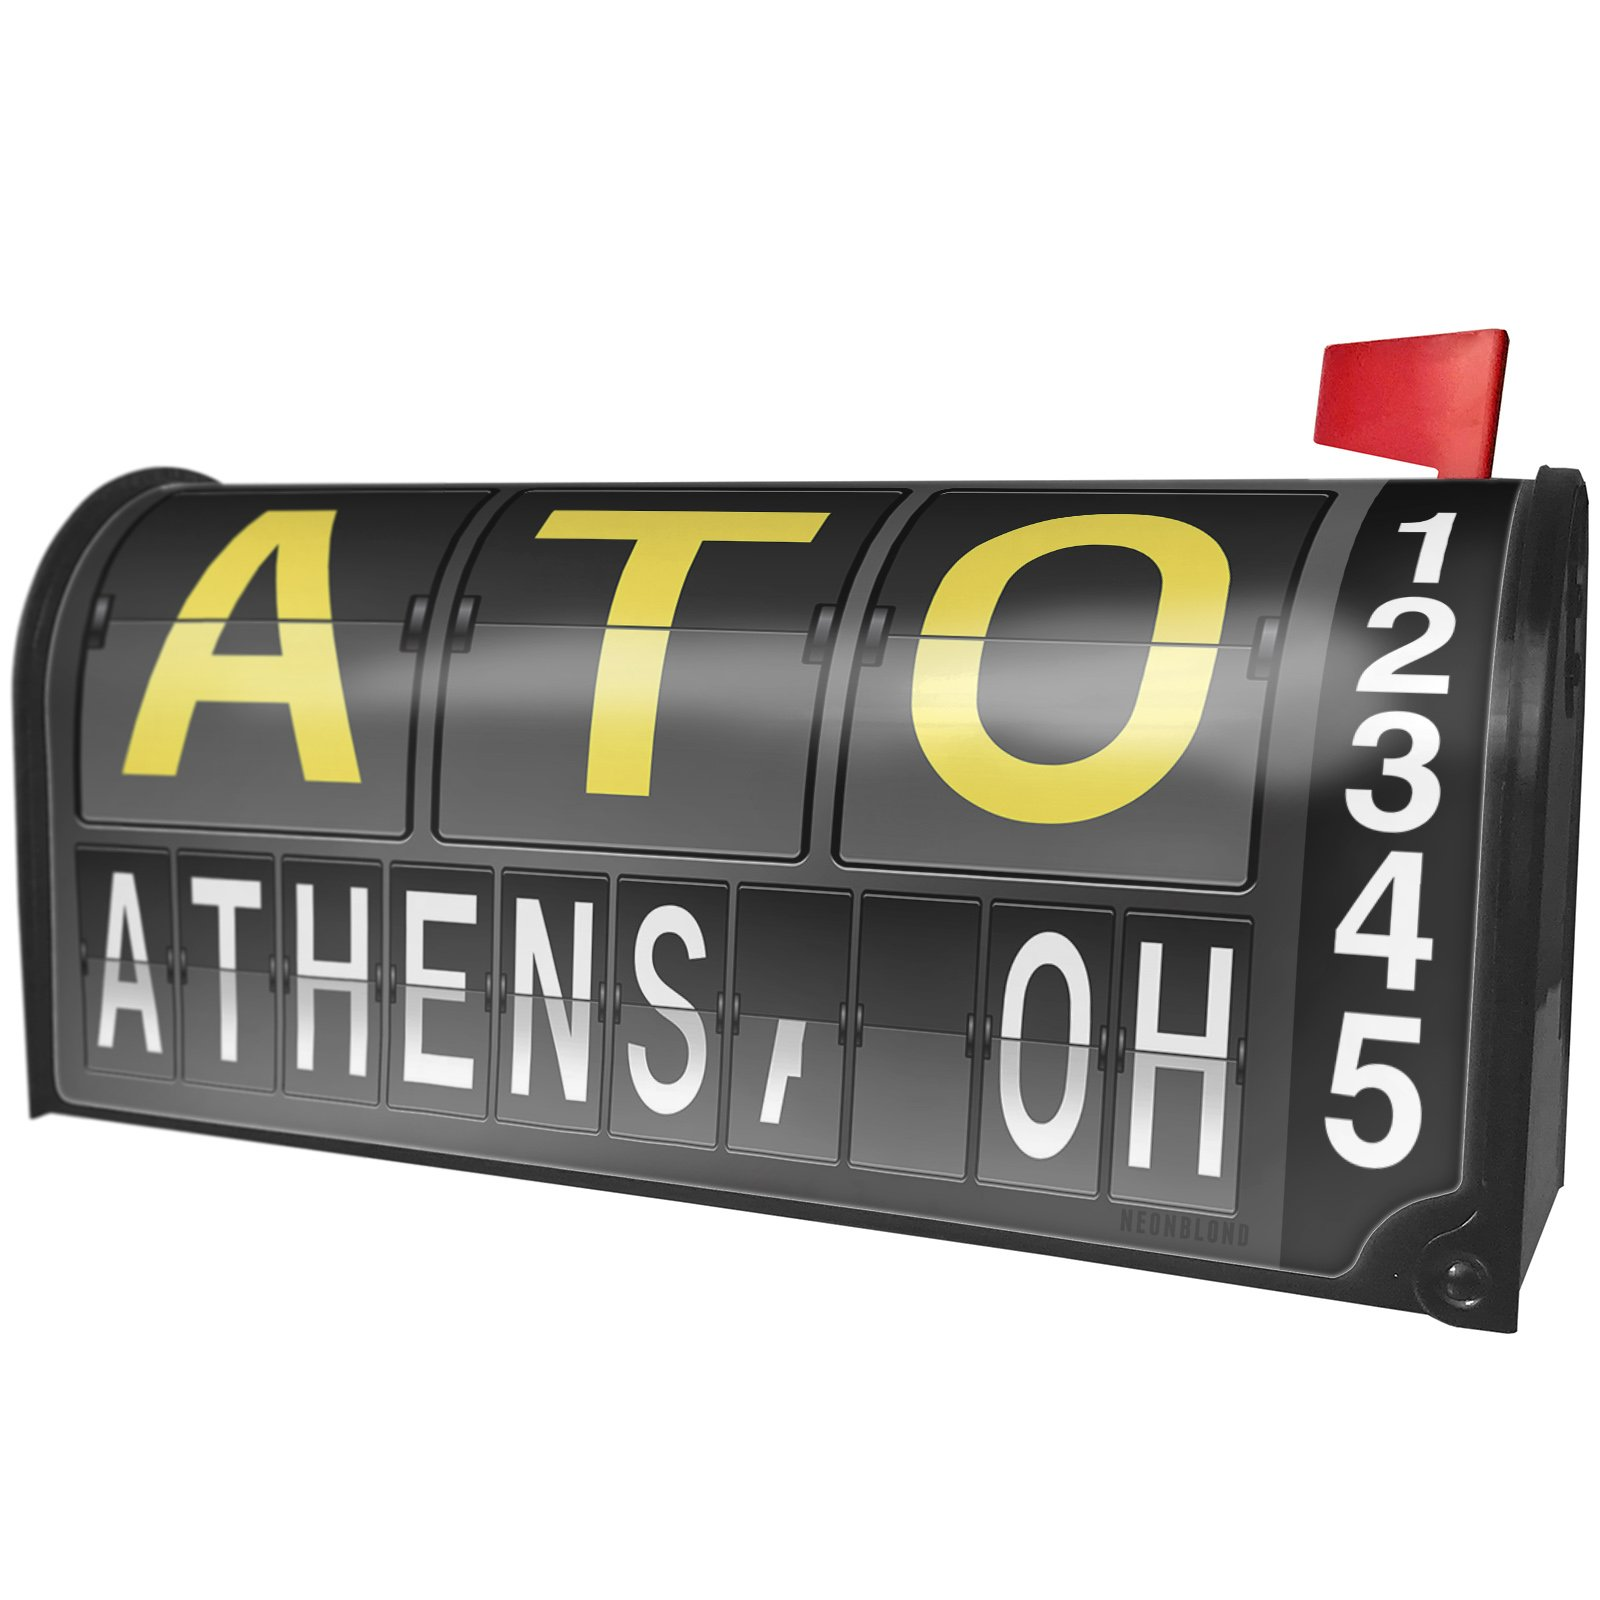 NEONBLOND ATO Airport Code for Athens, OH Magnetic Mailbox Cover Custom Numbers